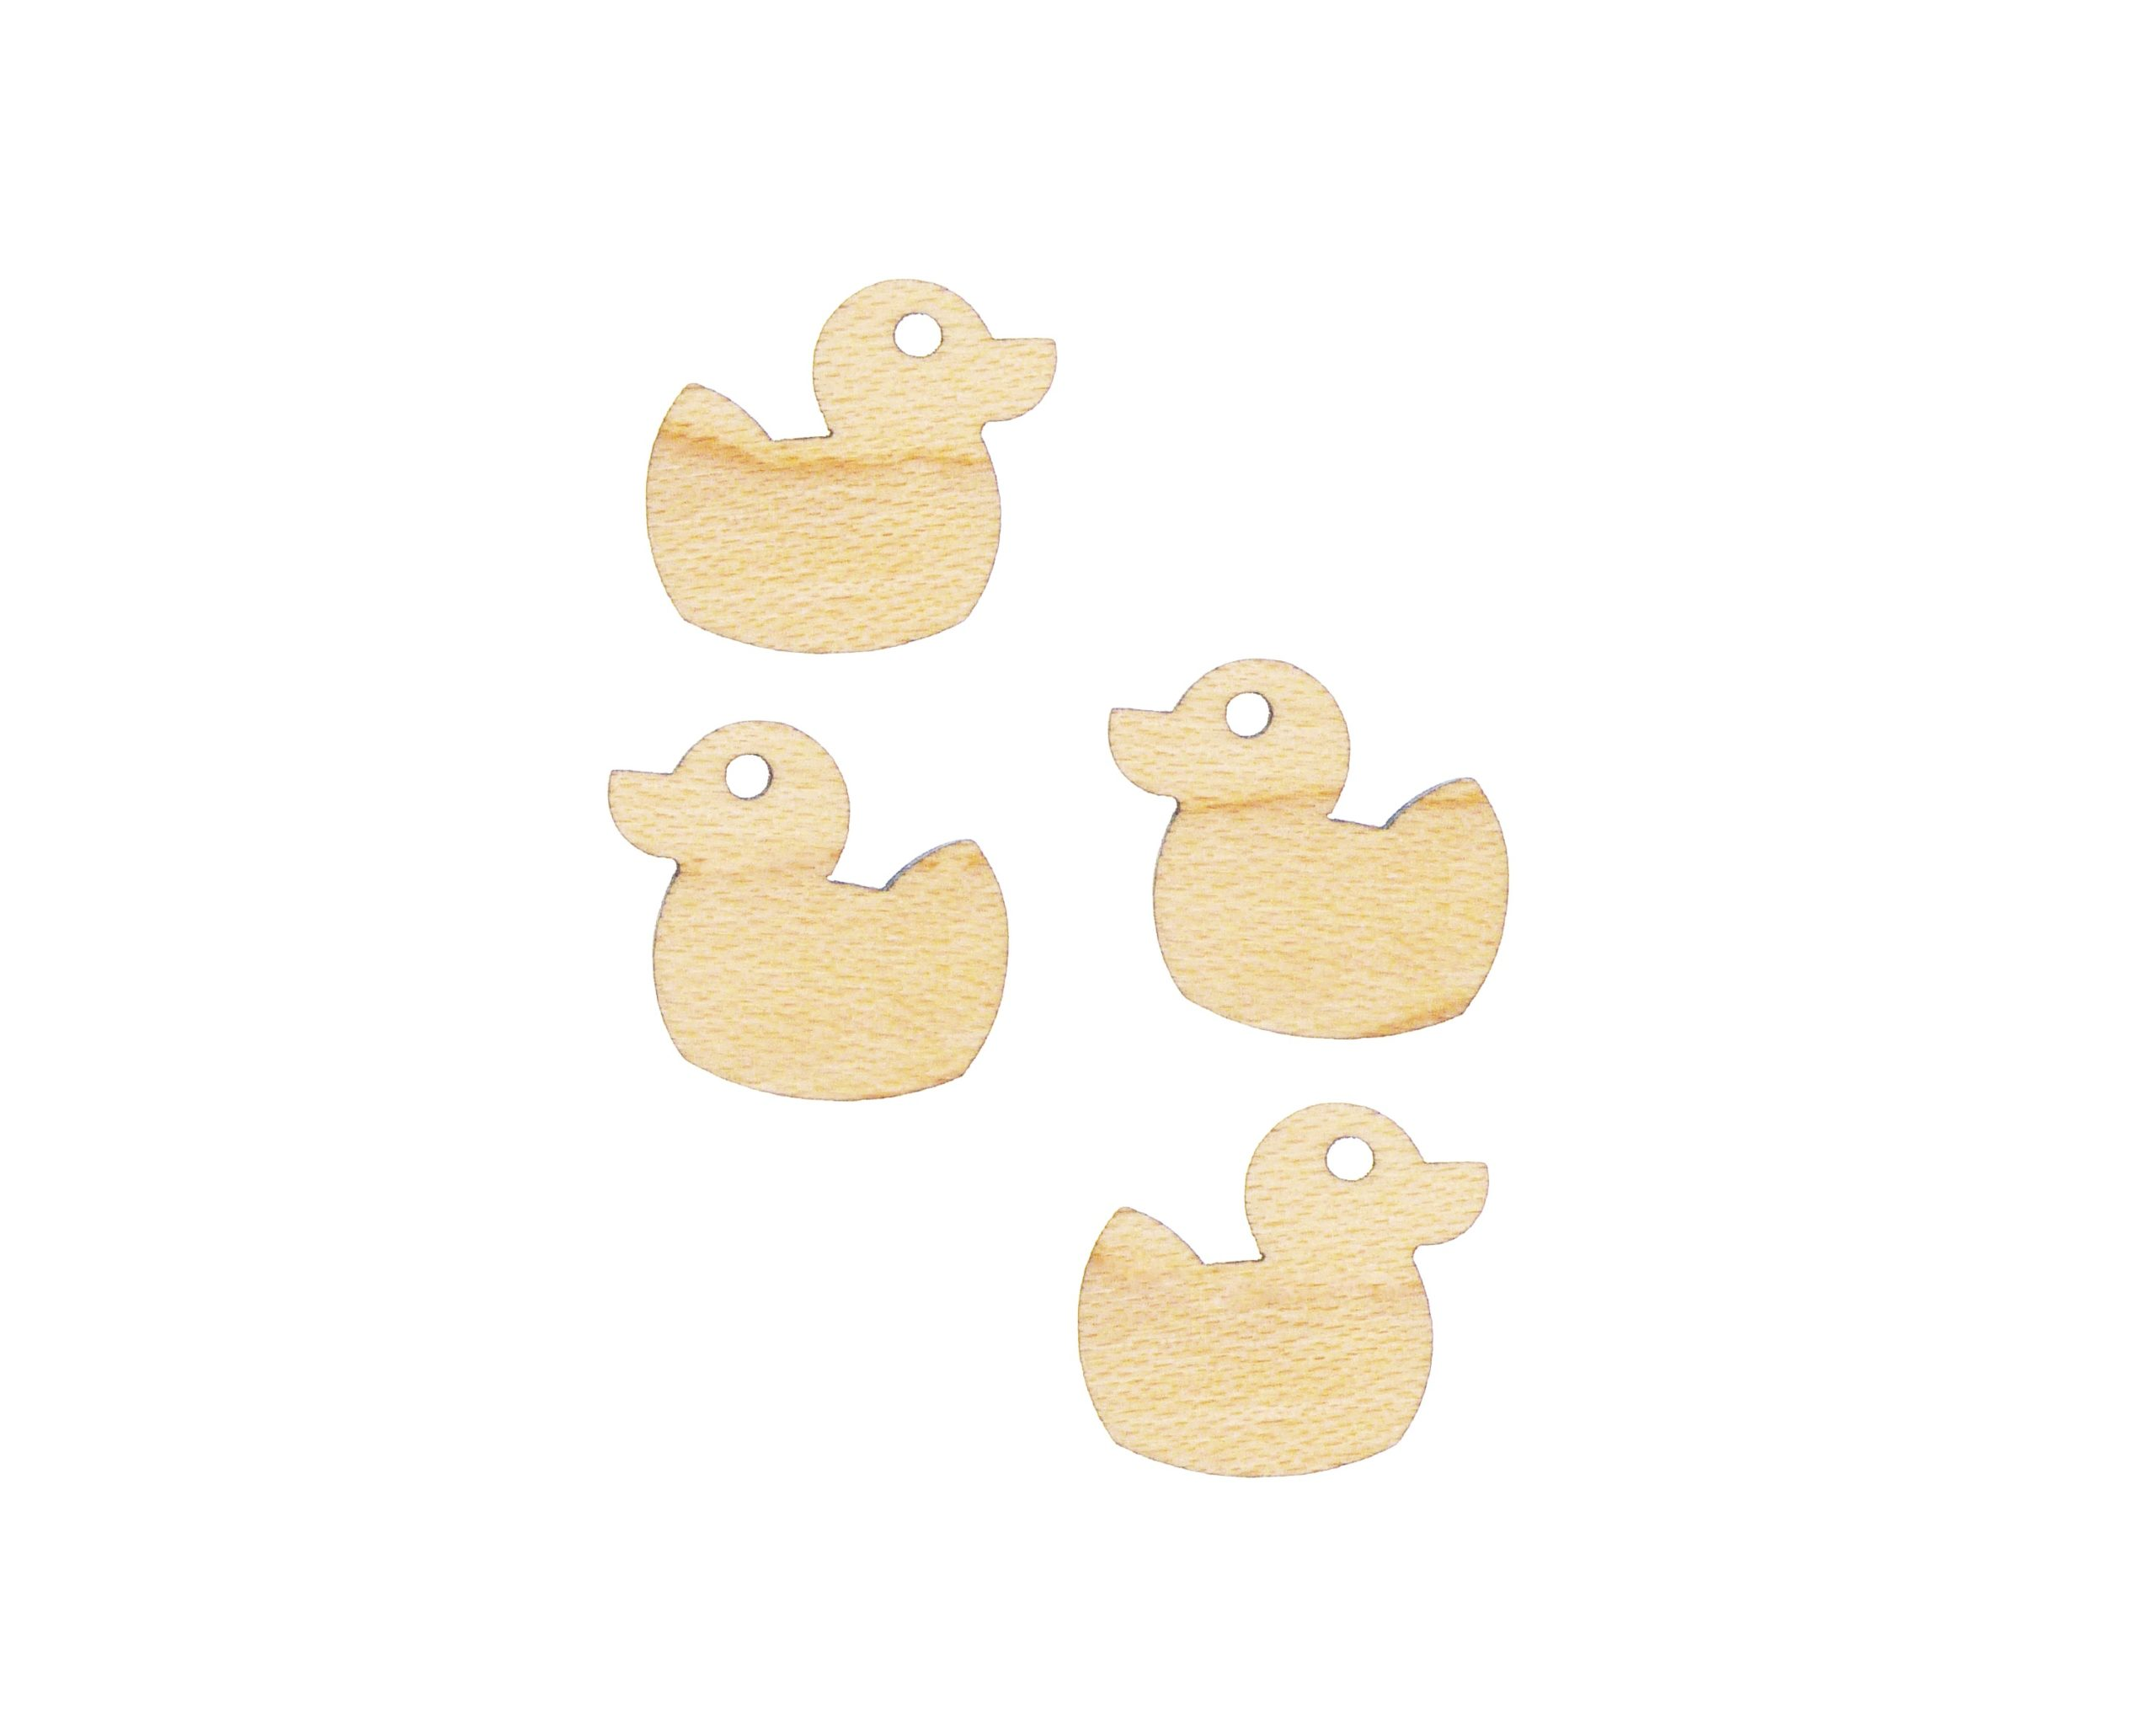 Rubber Ducks Supply 01 scaled